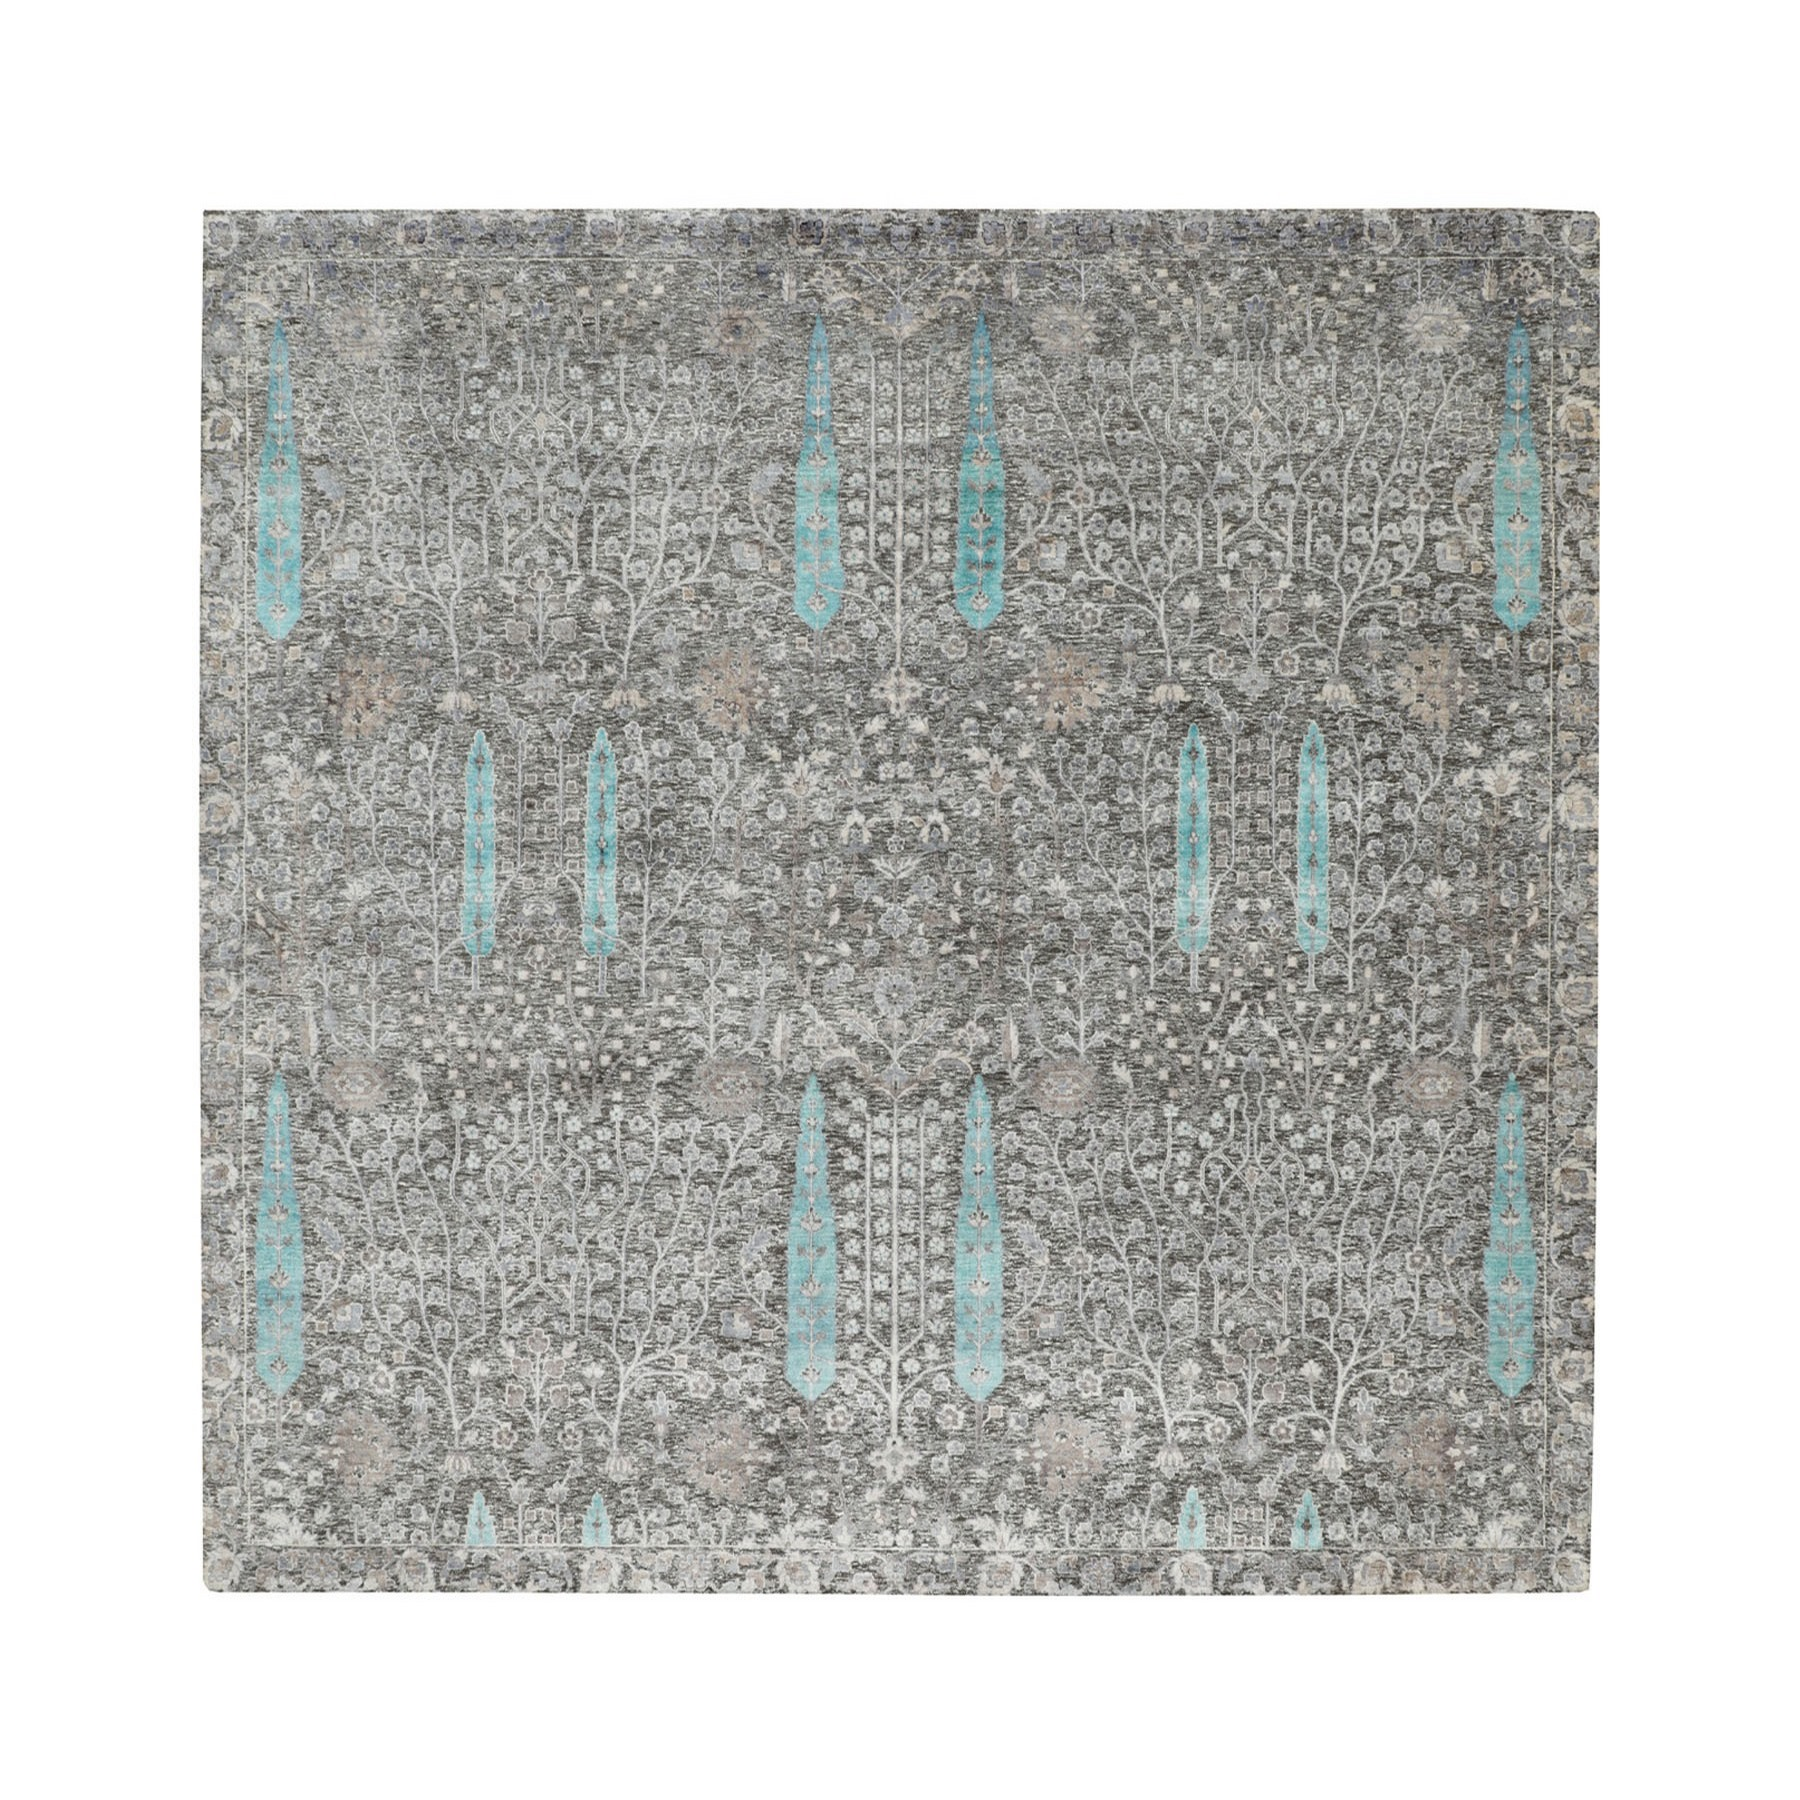 Transitional Rugs LUV523440